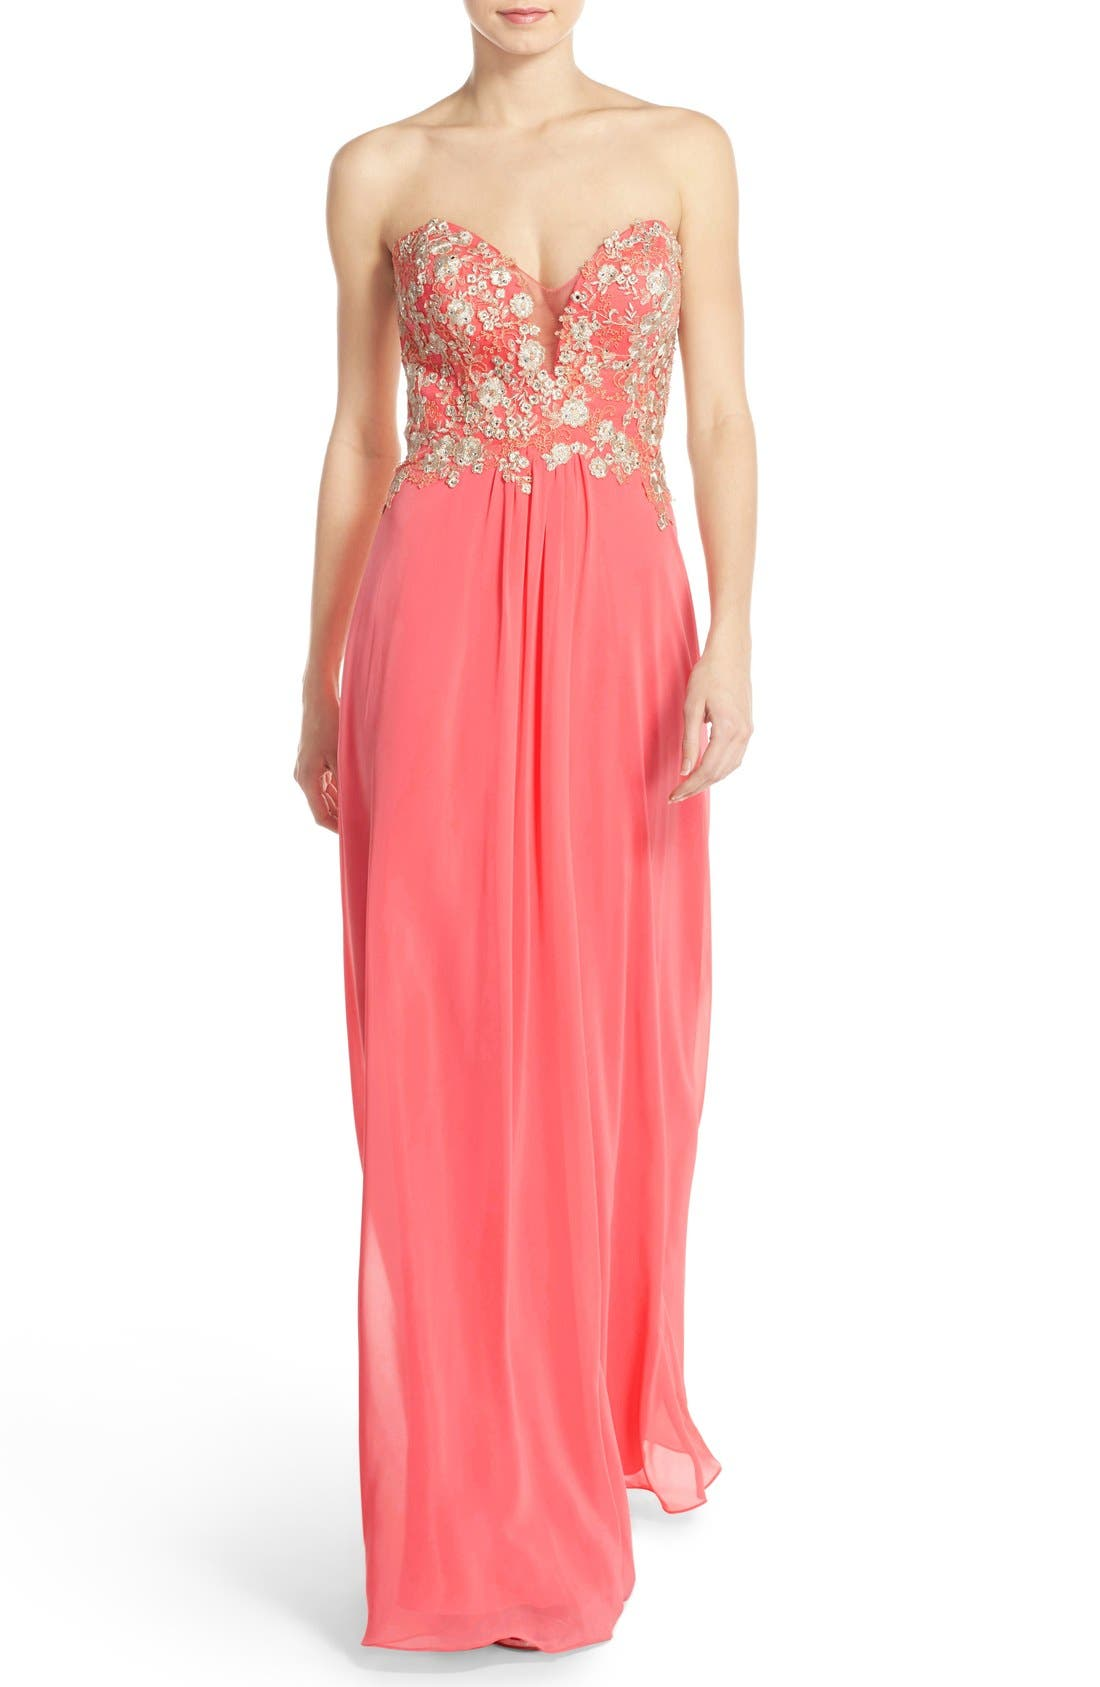 Alternate Image 1 Selected - Faviana Embroidered Chiffon Gown